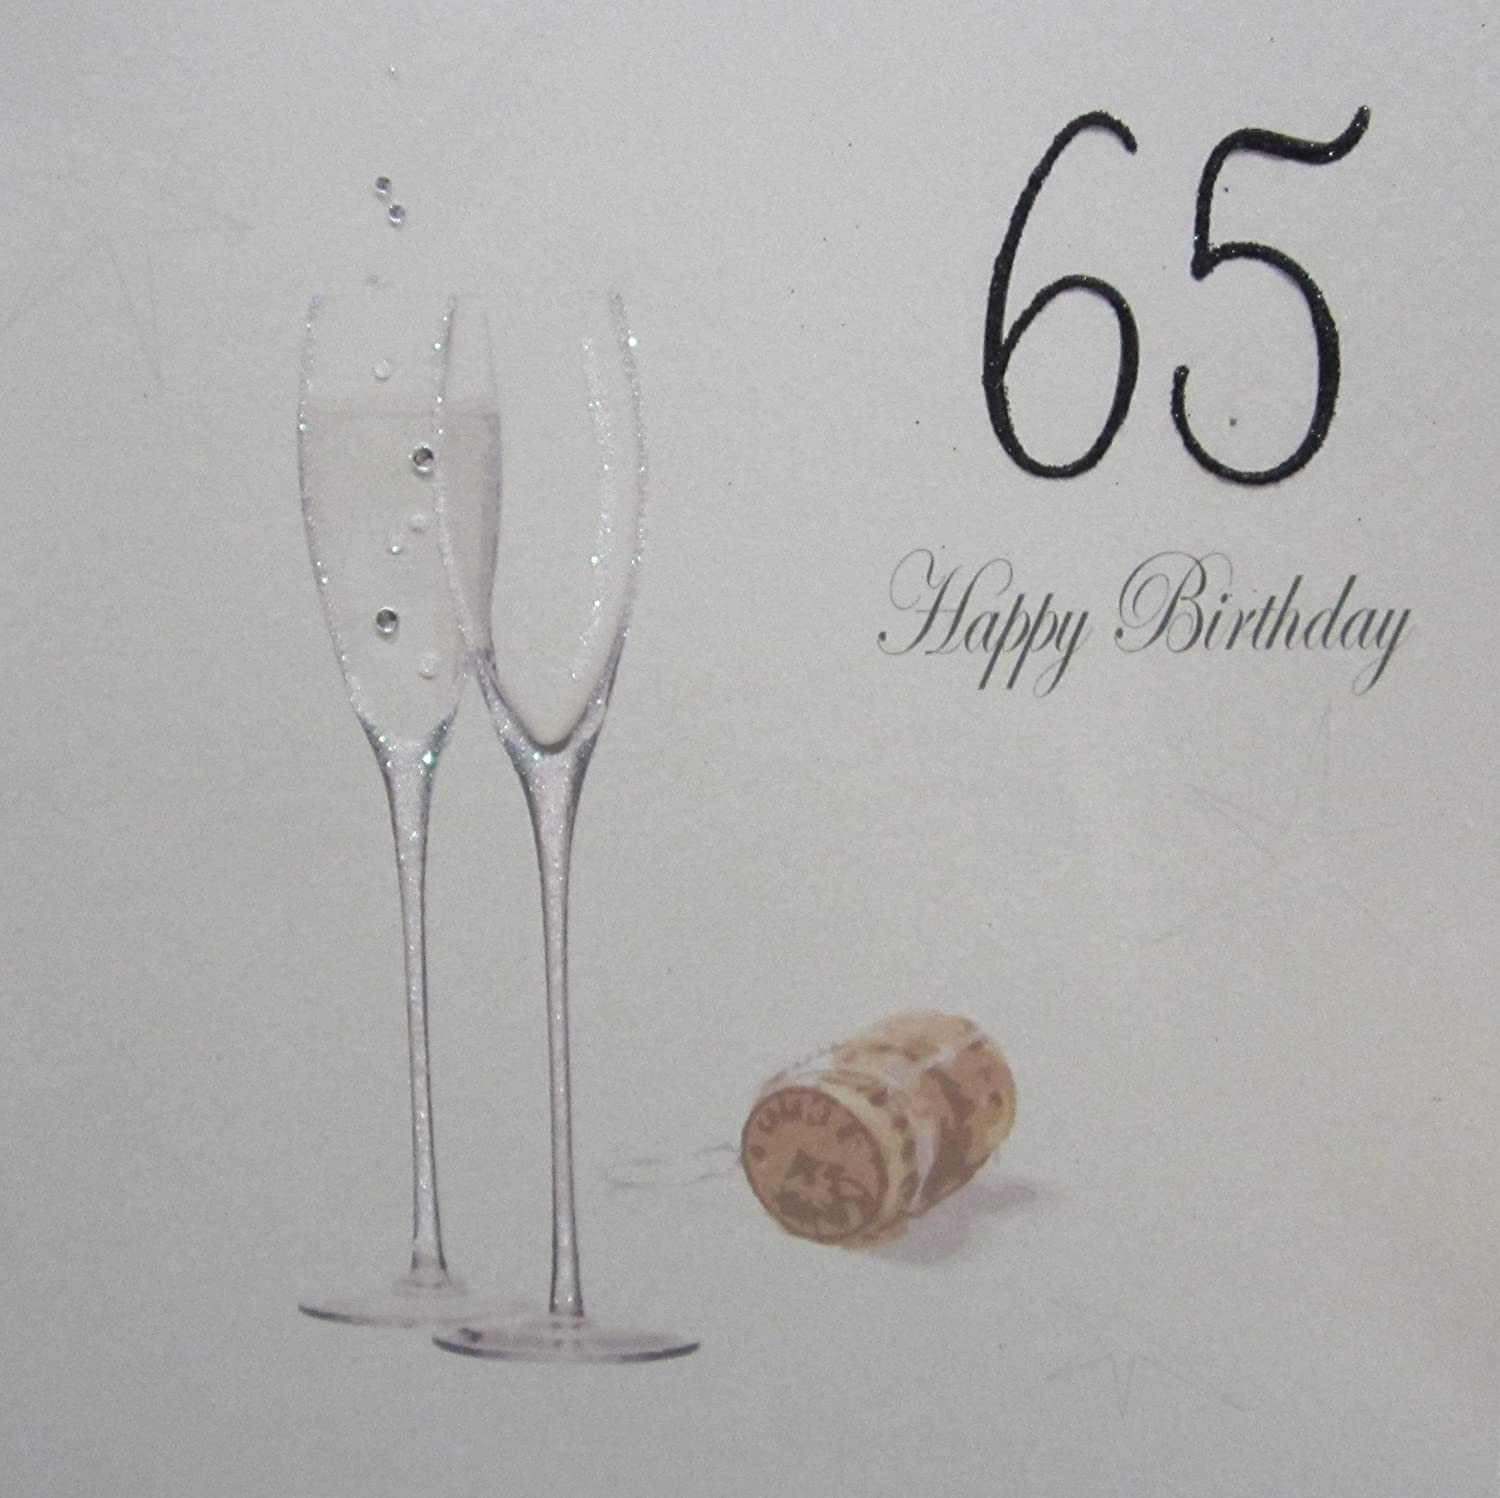 WHITE COTTON CARDS 65 Happy Birthday Handmade 65th Birthday Card with Champagne Design, Black pdc65-black